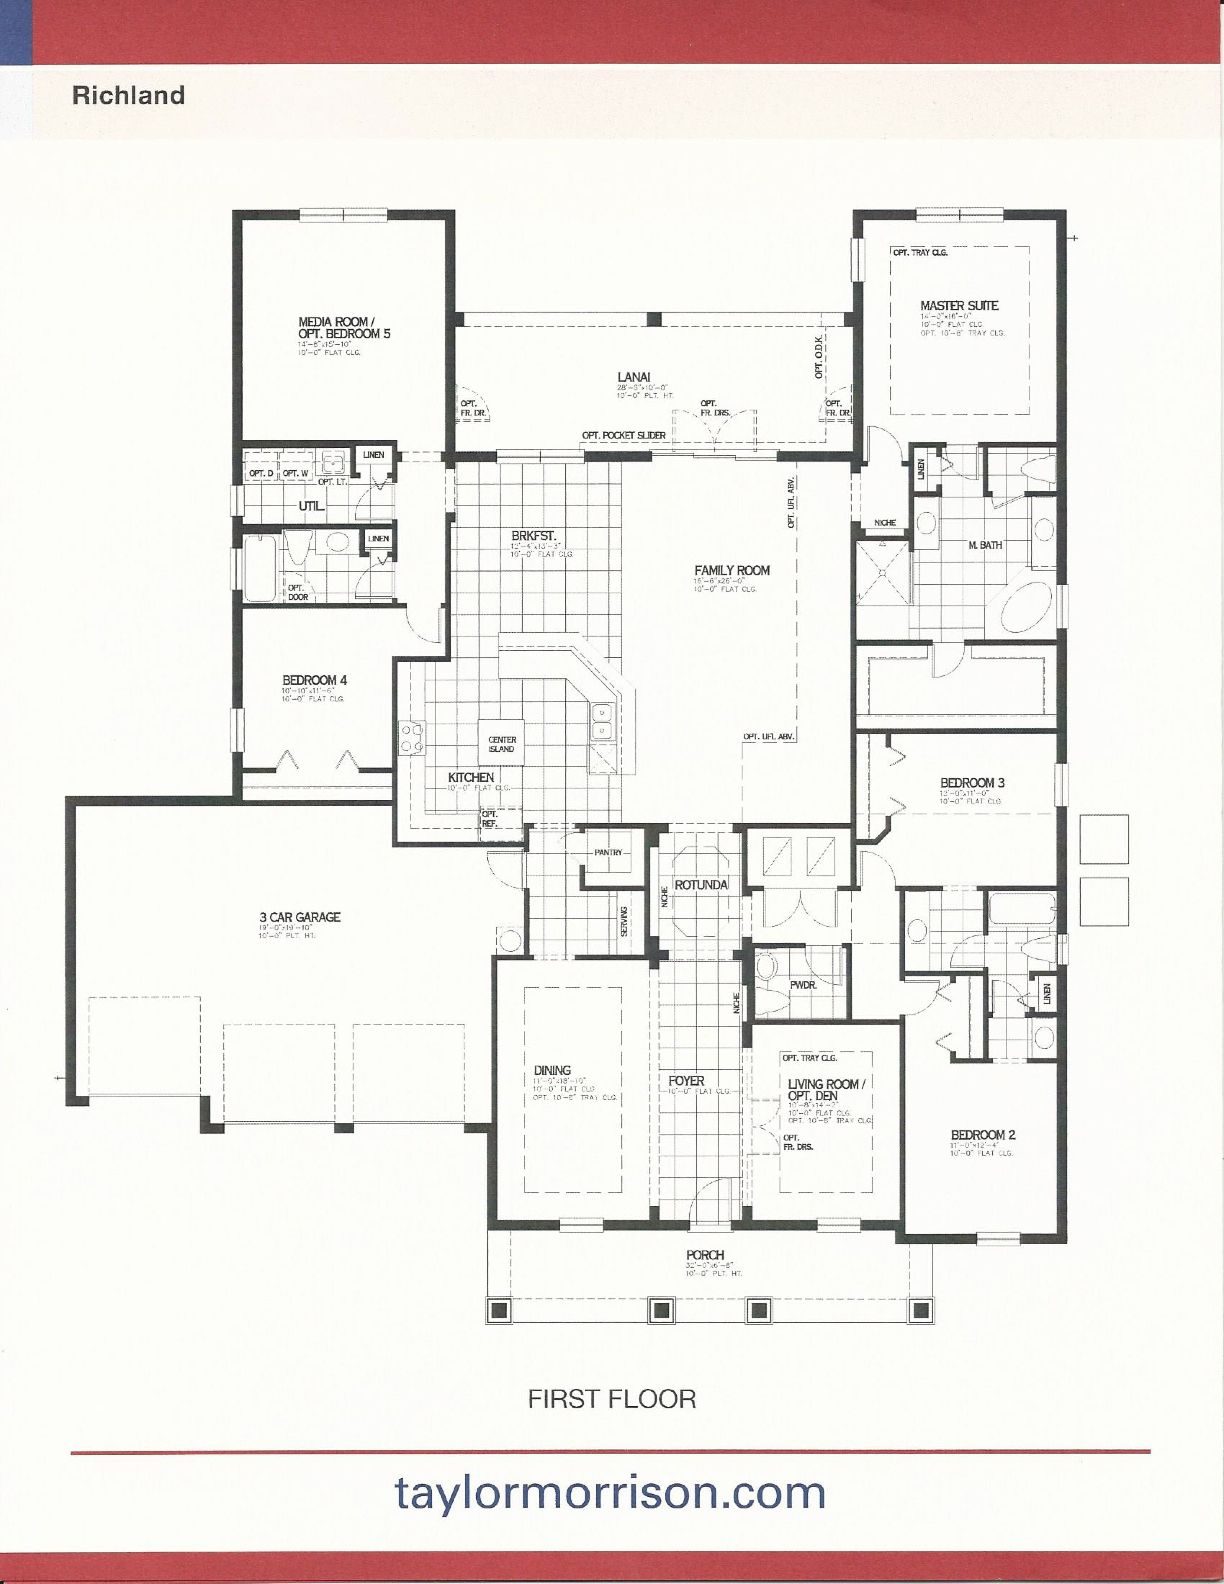 taylor morrison homes in independence richard floor plan in winter